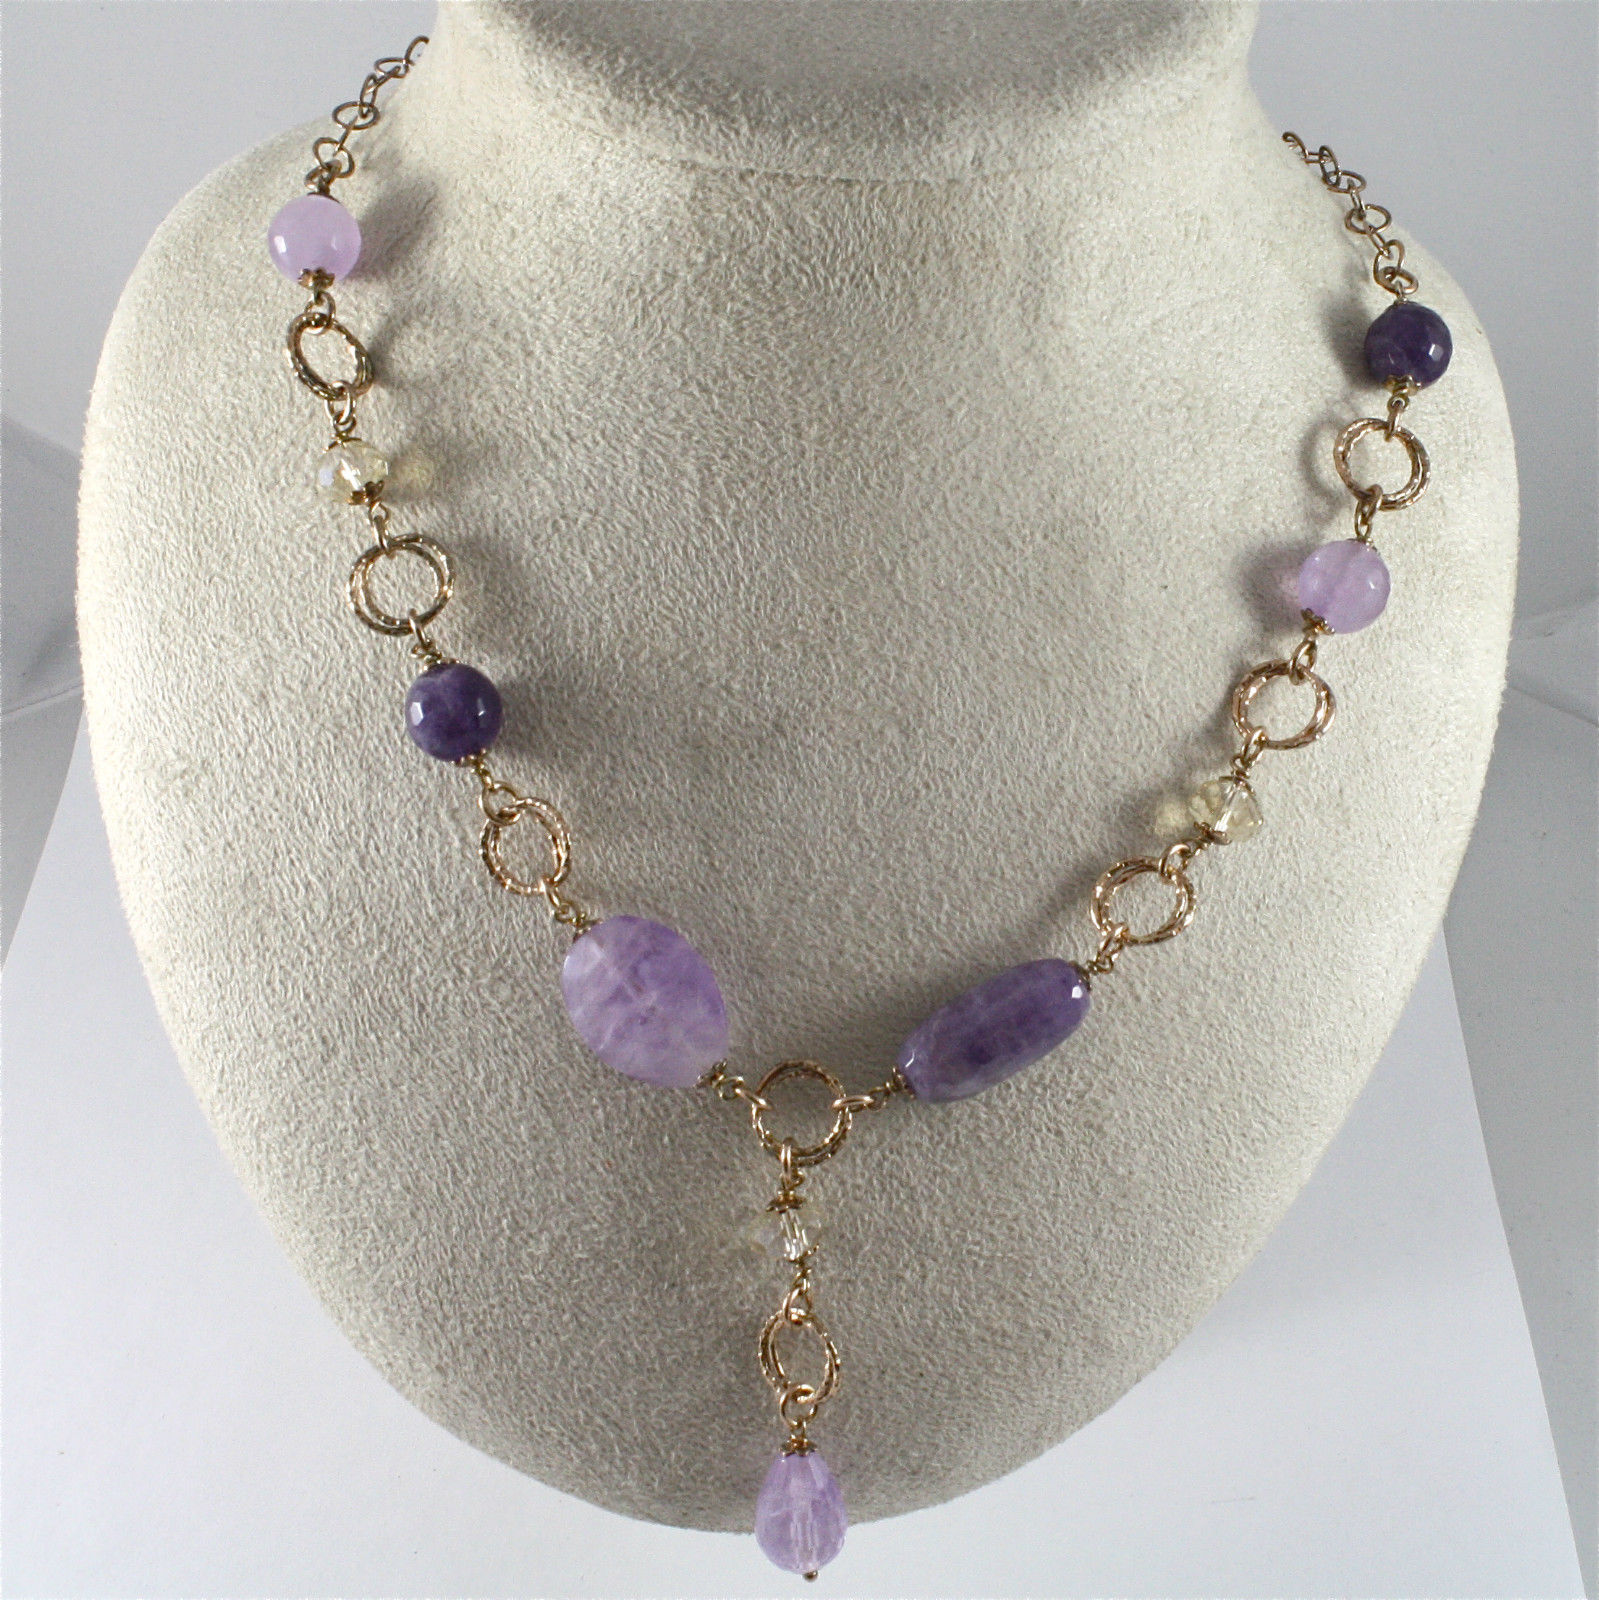 925 Silver Necklace, Plated with Crystals ospreys and Amethyst